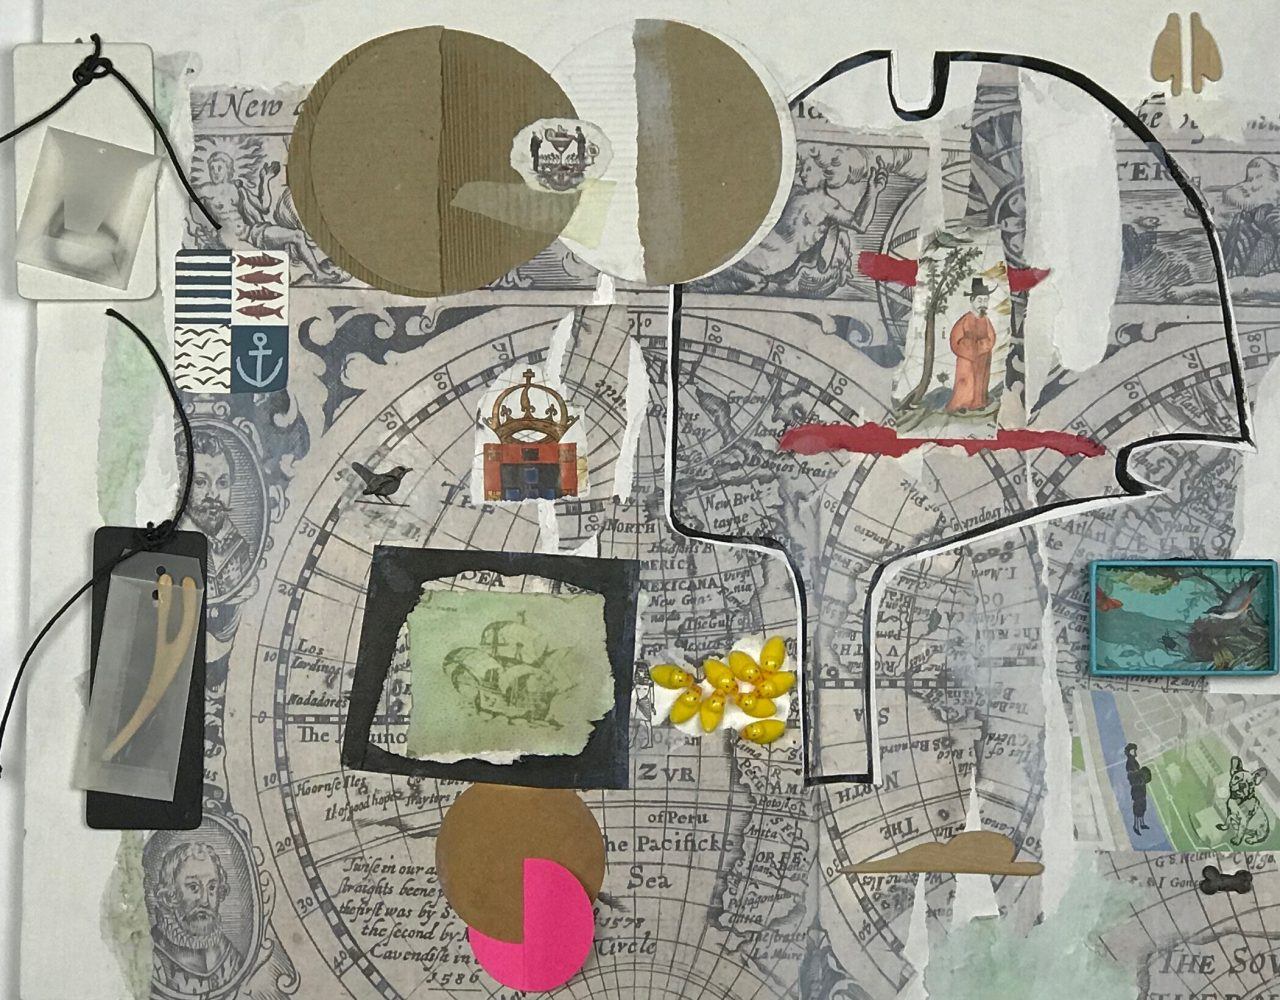 NO MAPA 2 / Técnica mista sobre papel </br>